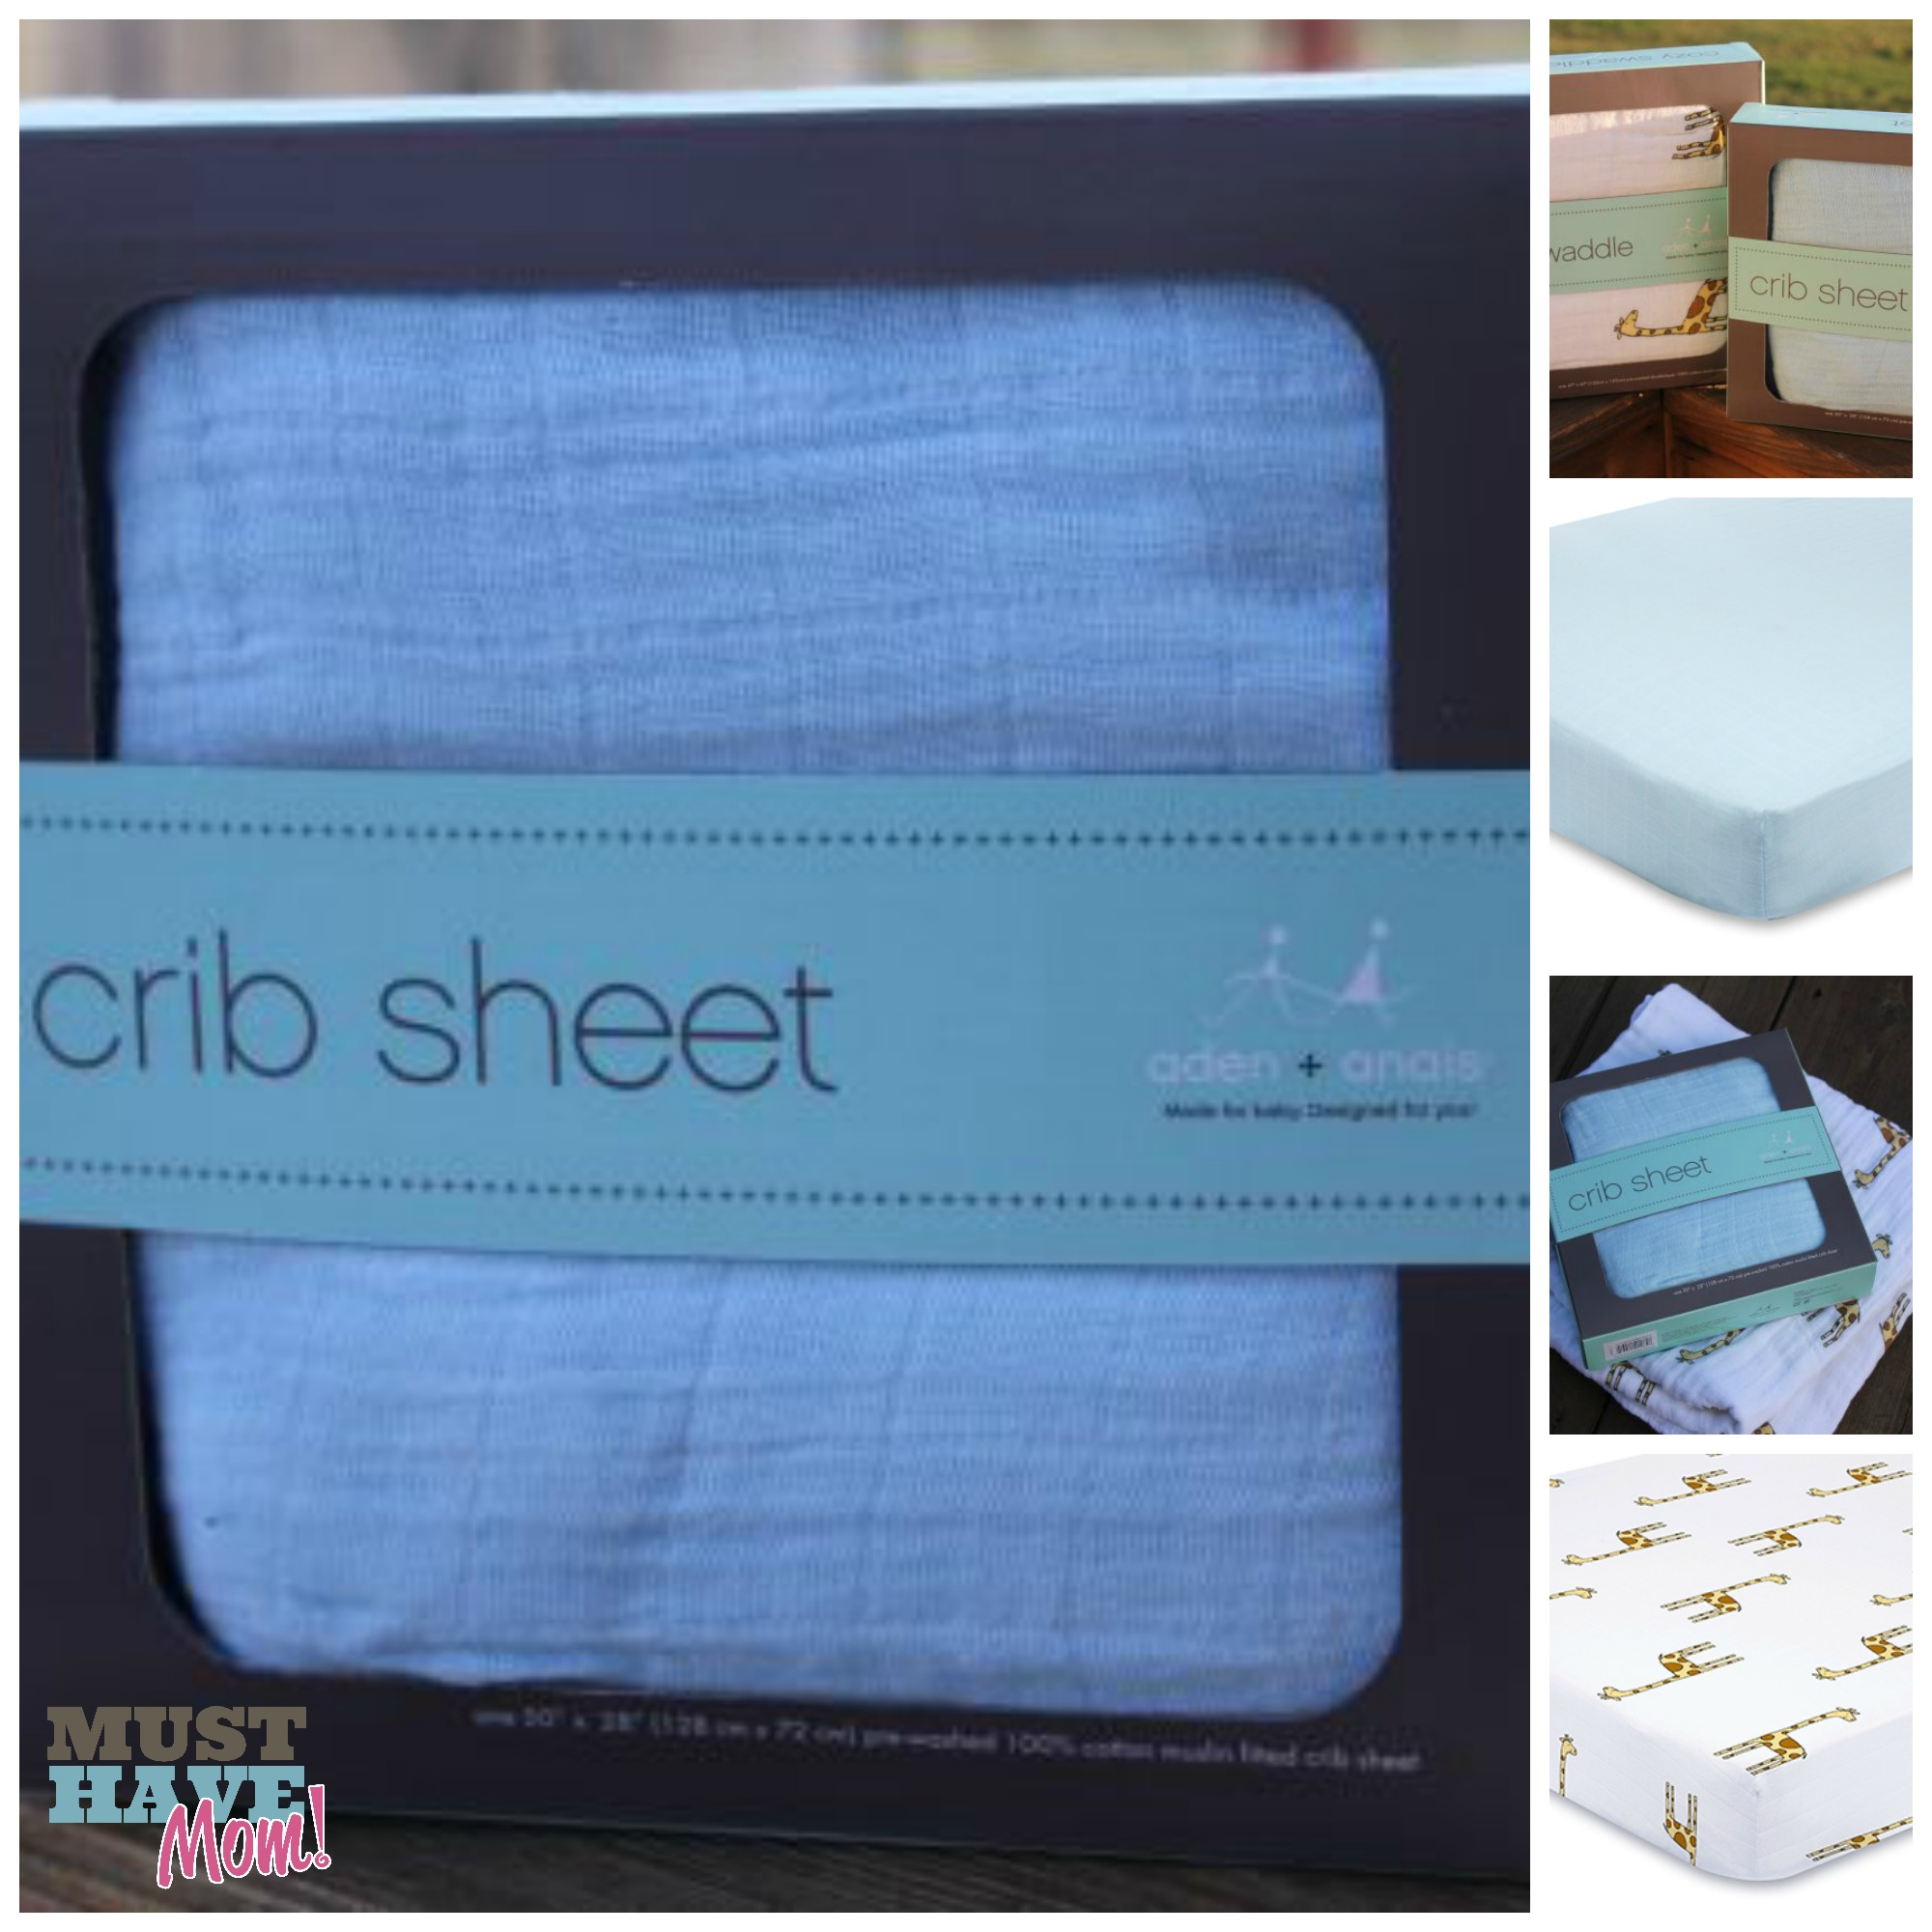 globalisation crib sheet Flannel (the best crib sheets for winter) flannel is a very warm material, making them the ideal crib sheets for winter or cooler nights they trap warmth efficiently, keeping baby warm even when it's very cold outside.